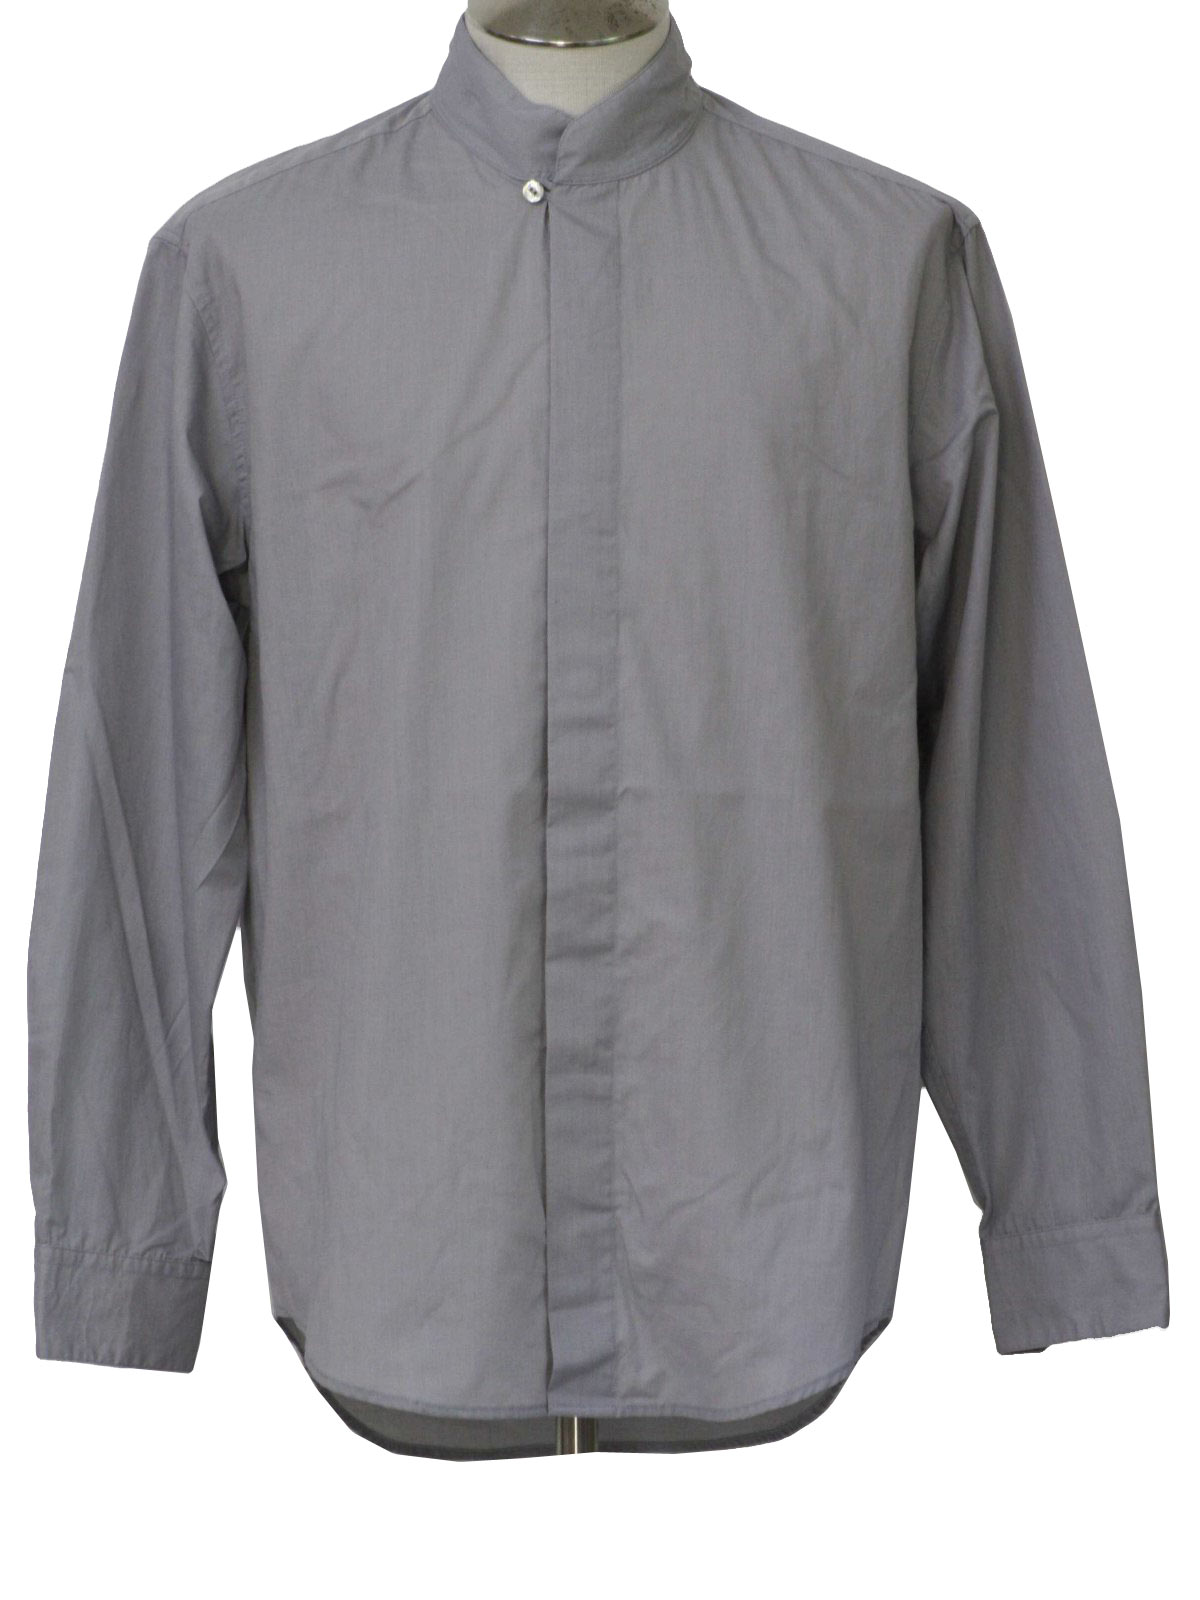 Vintage 1960s Shirt Late 60s Style Made In 80s Mens Grey Cotton